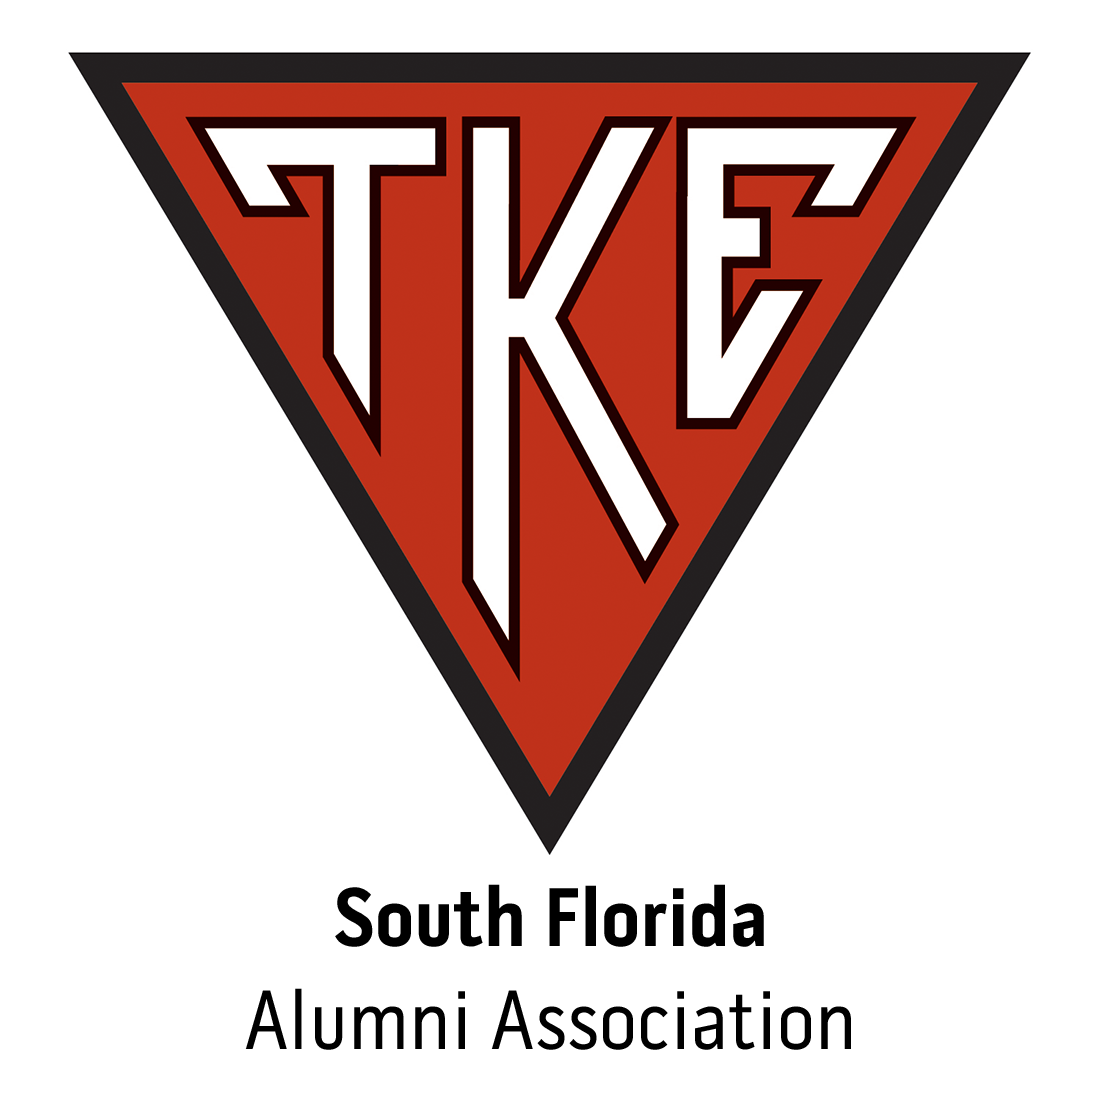 South Florida Alumni Association for St Thomas University